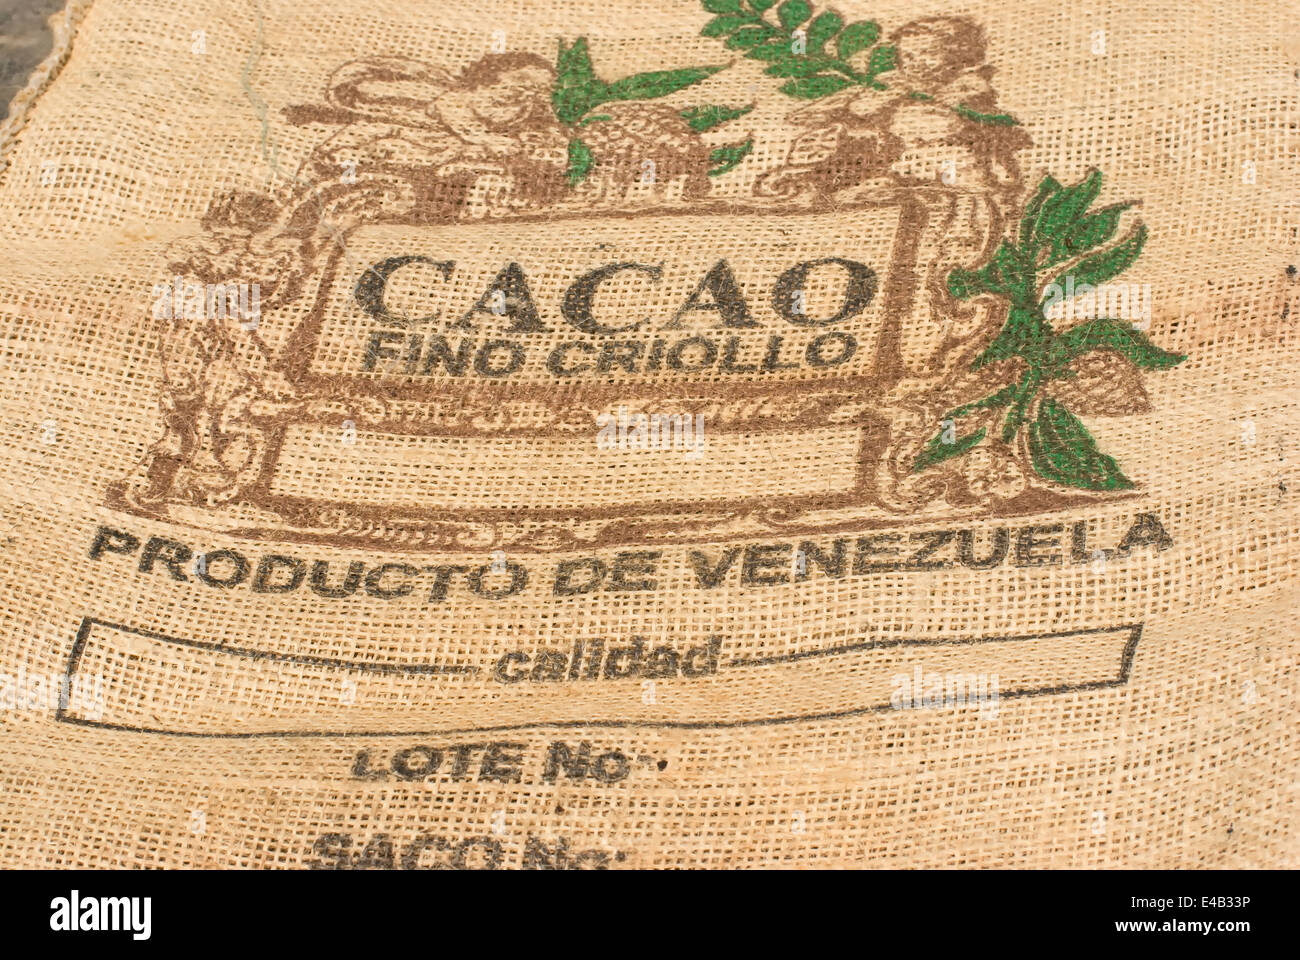 Venezuela bag of spilt cocoa beans - Stock Image